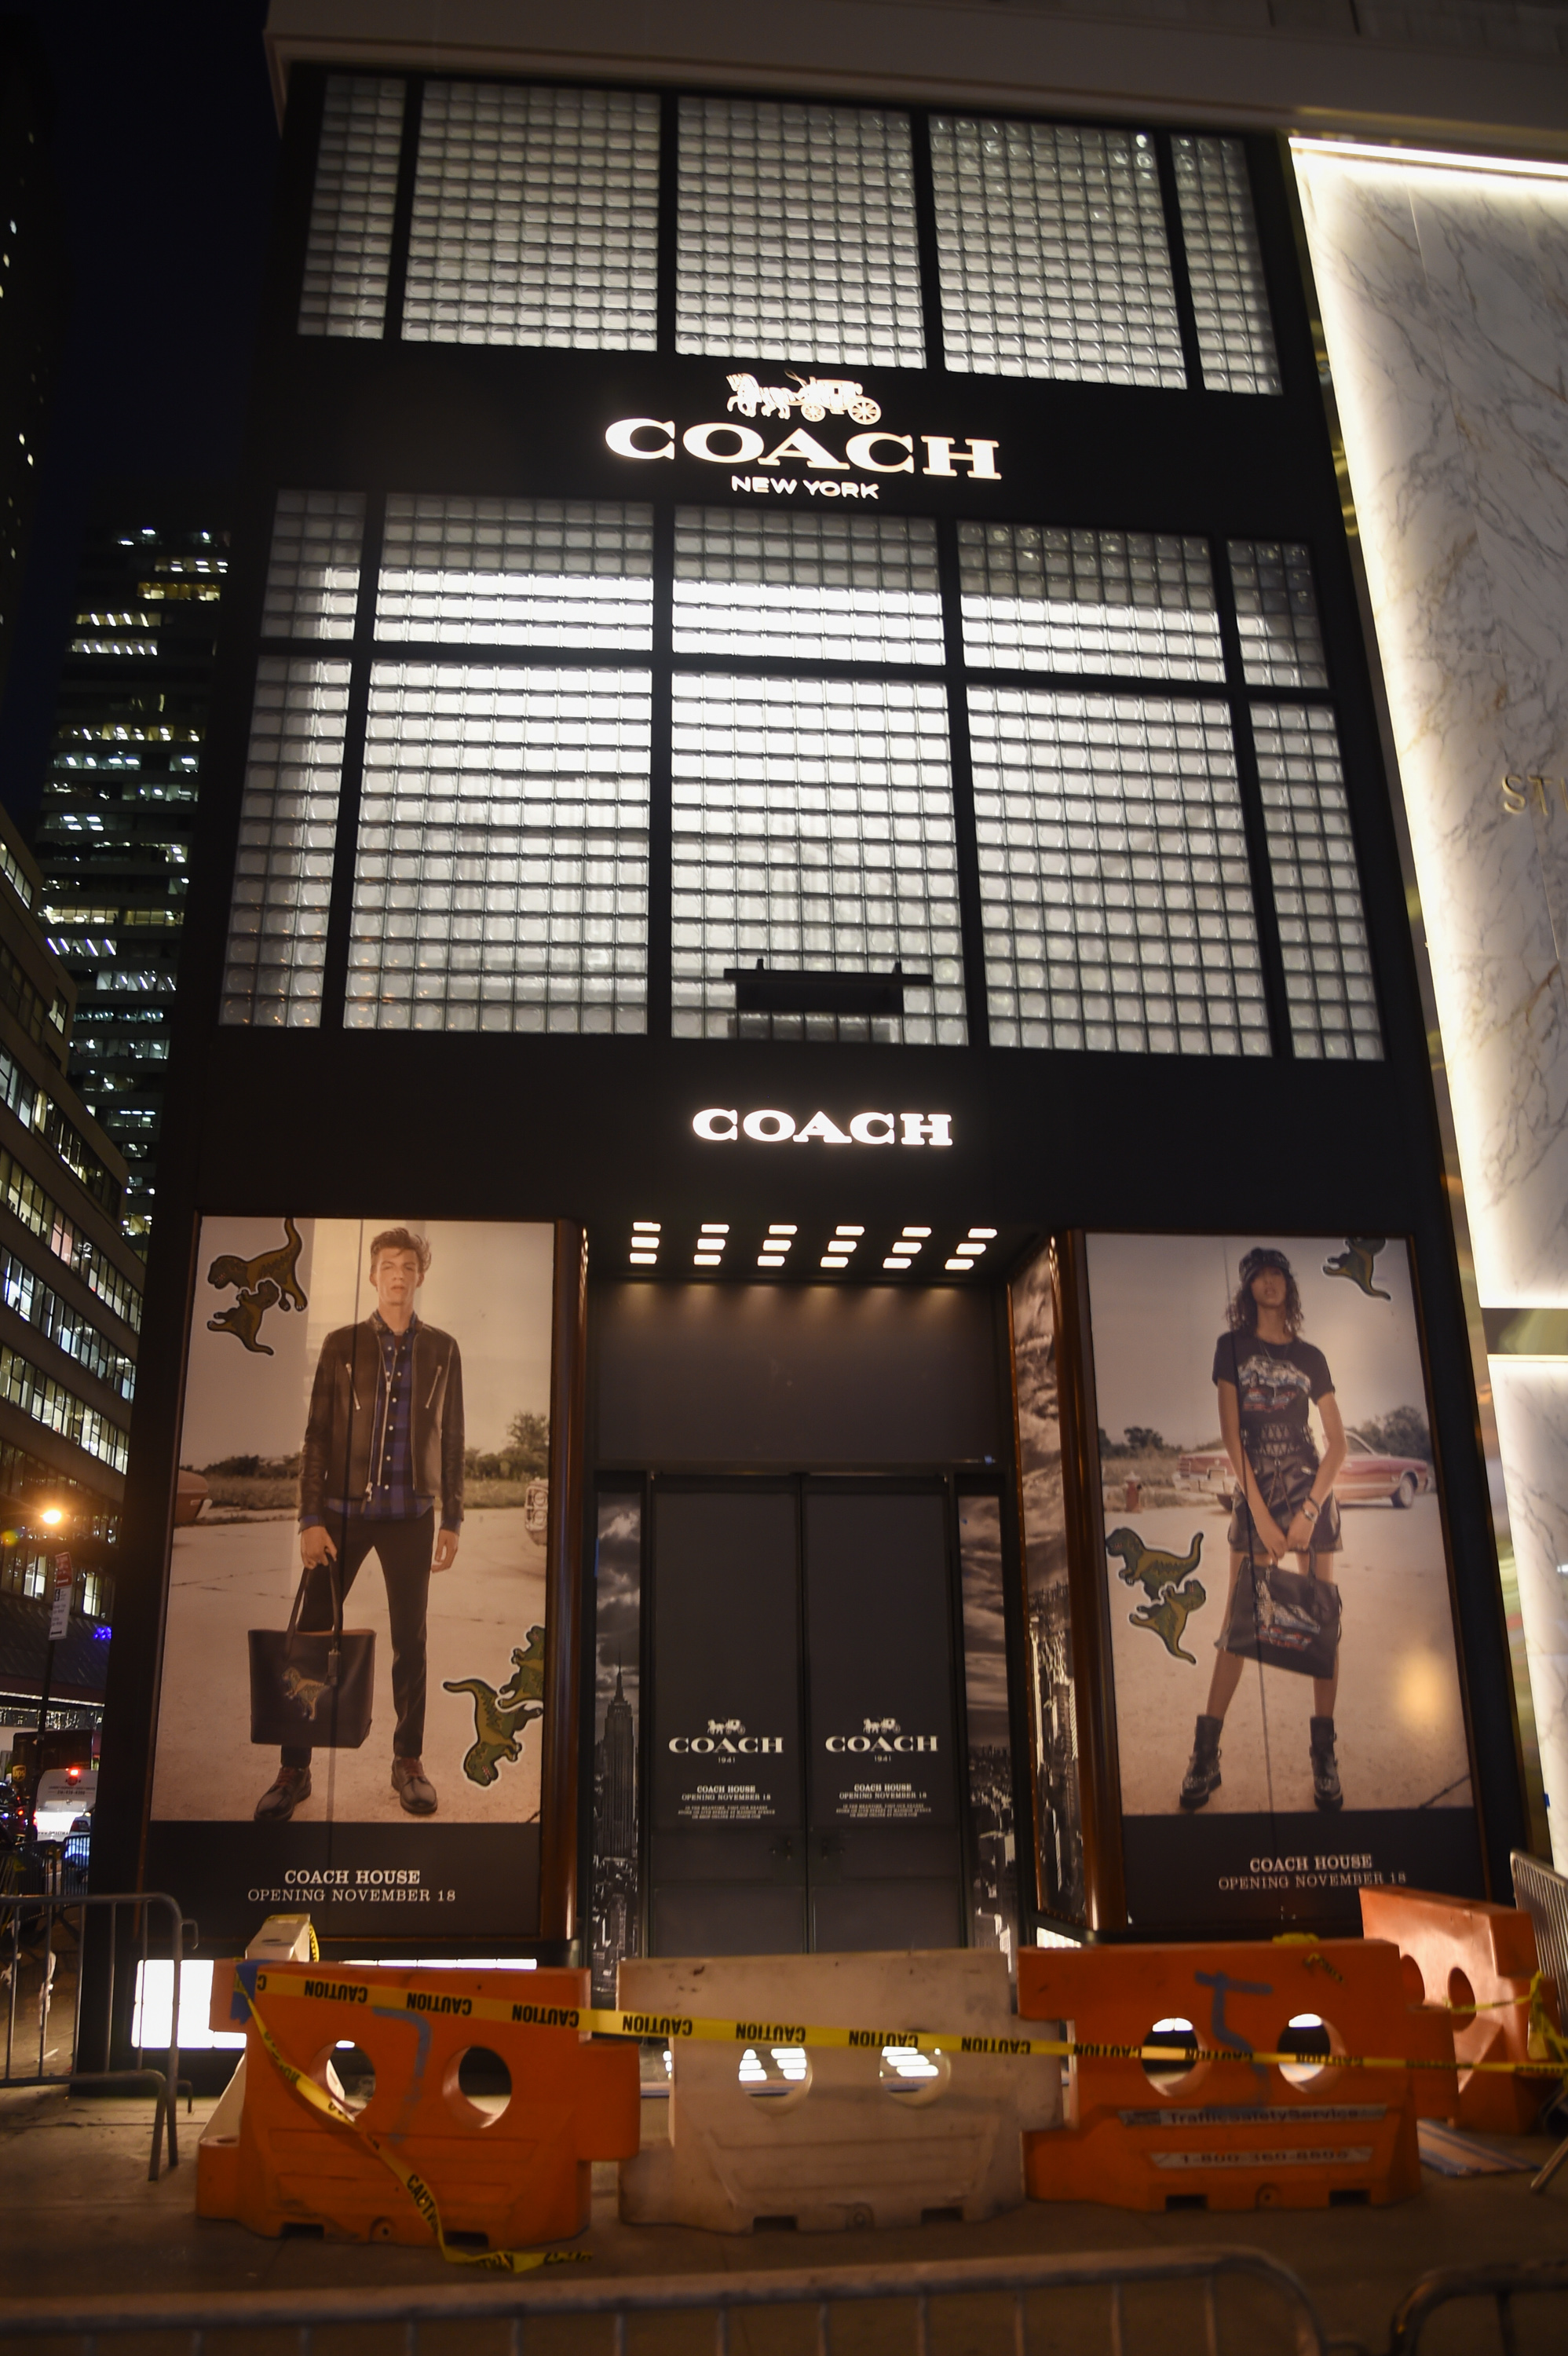 The Fifth Avenue Coach store.